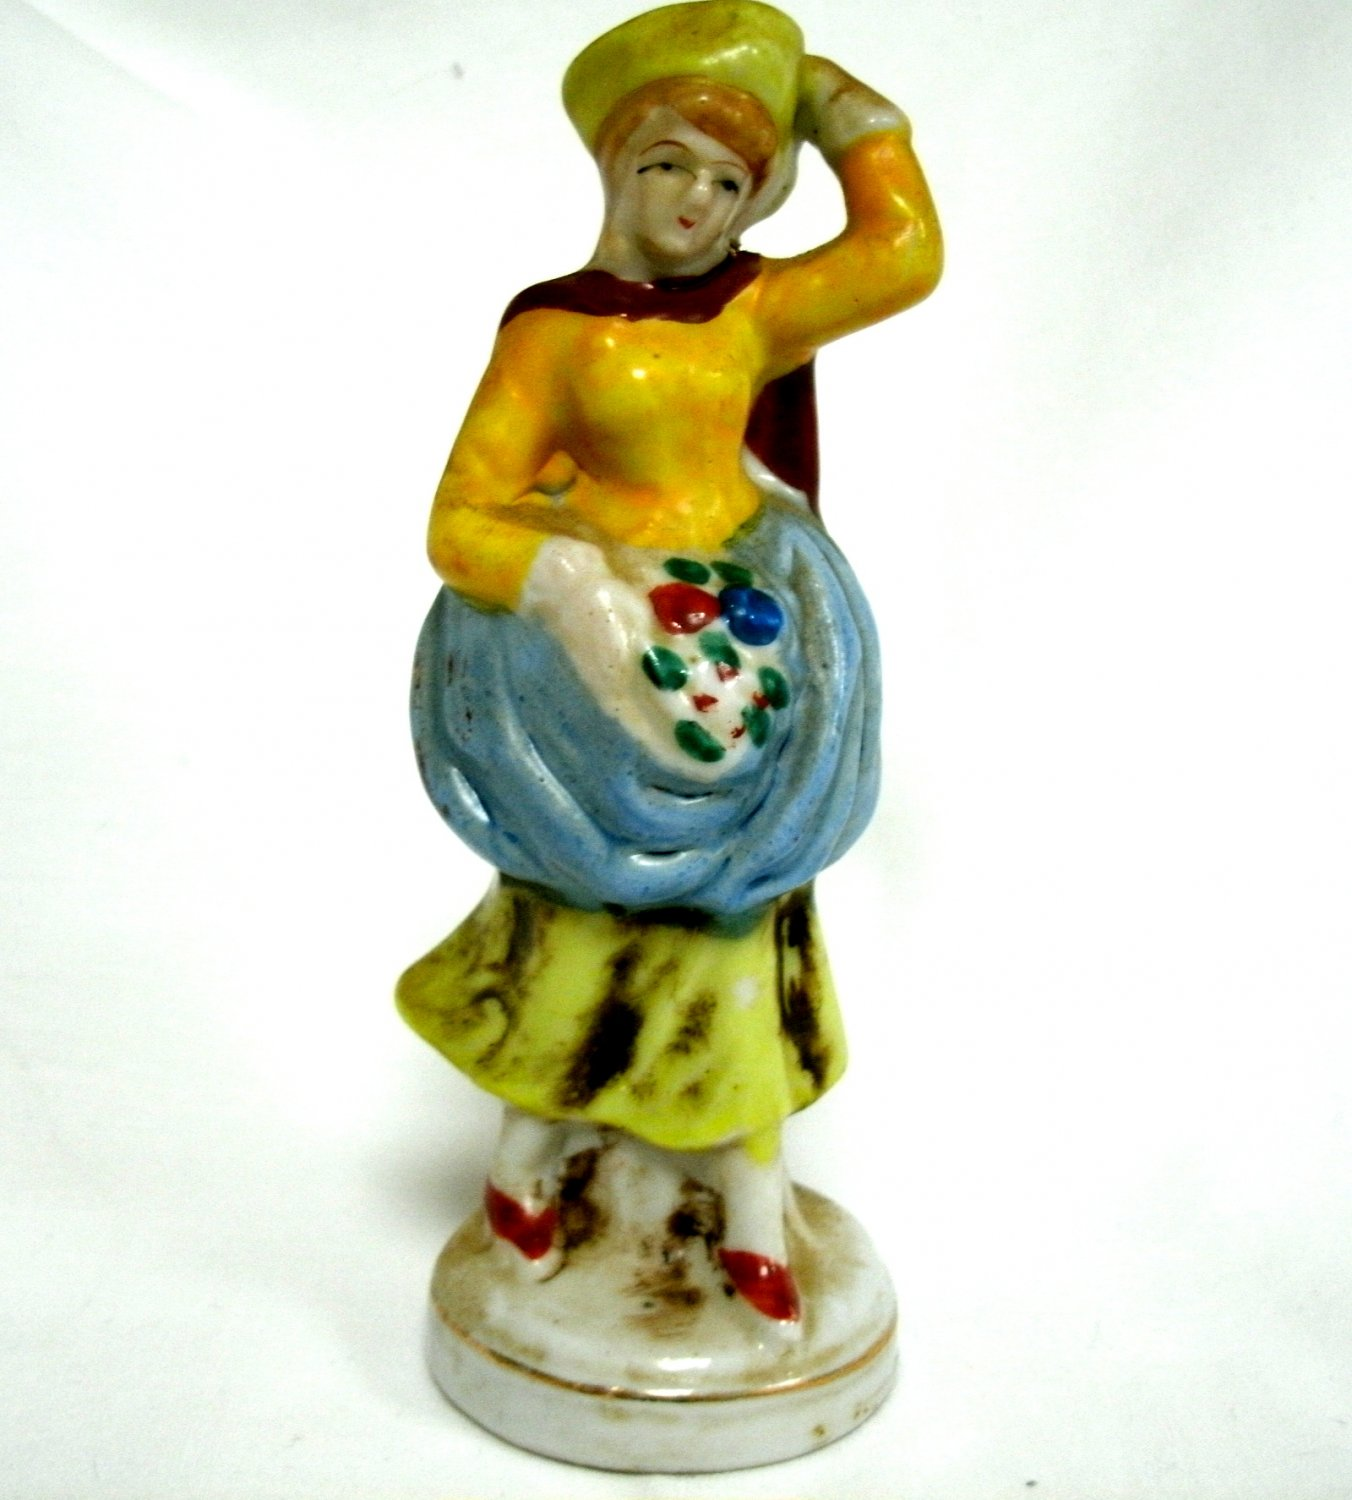 Porcelain Figurine Of Woman with Hat Made in Occupied Japan 5 Inches